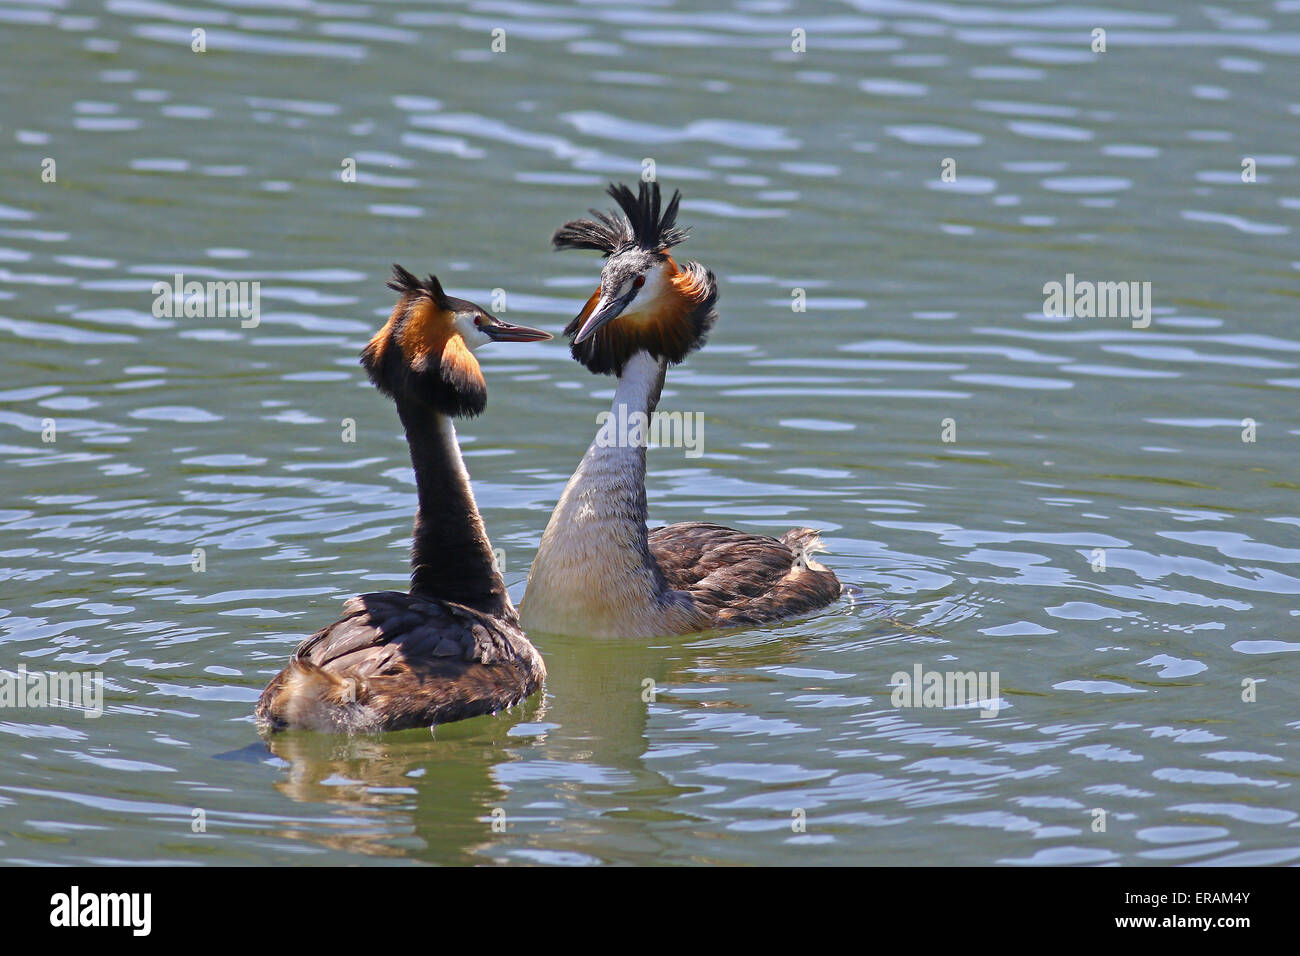 Great crested grebes love dance during mating season - Stock Image